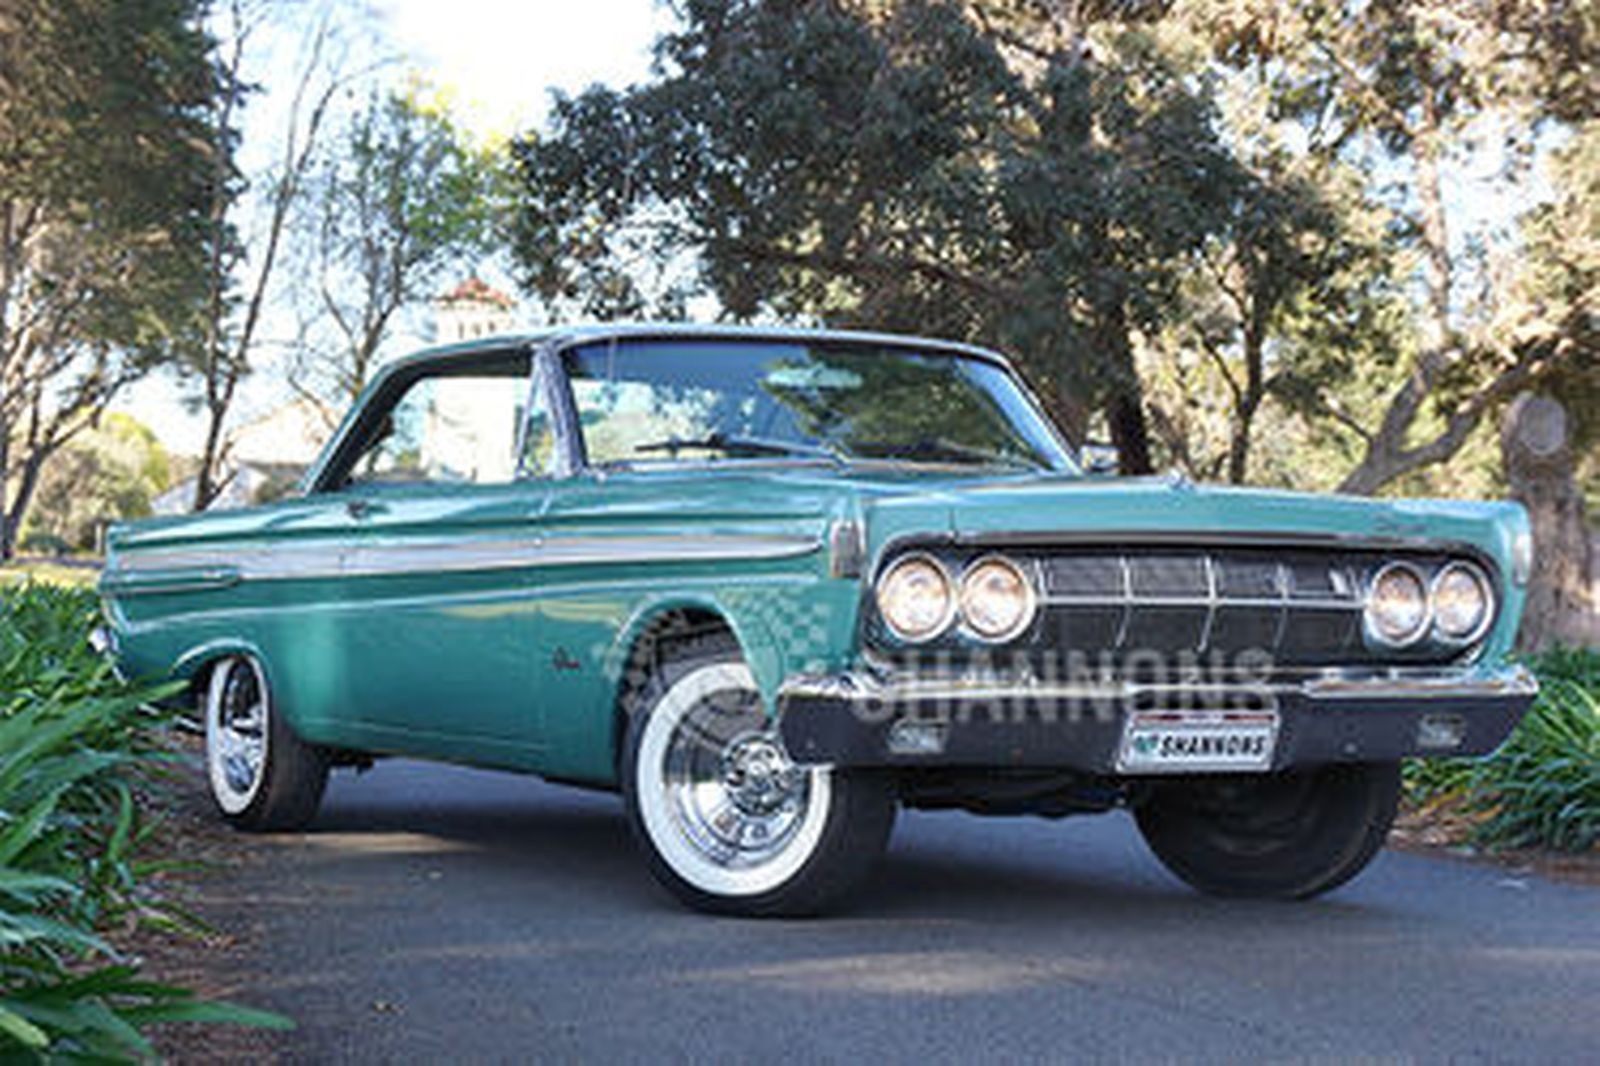 Sold: Ford Mercury Comet Caliente Coupe (LHD) Auctions - Lot